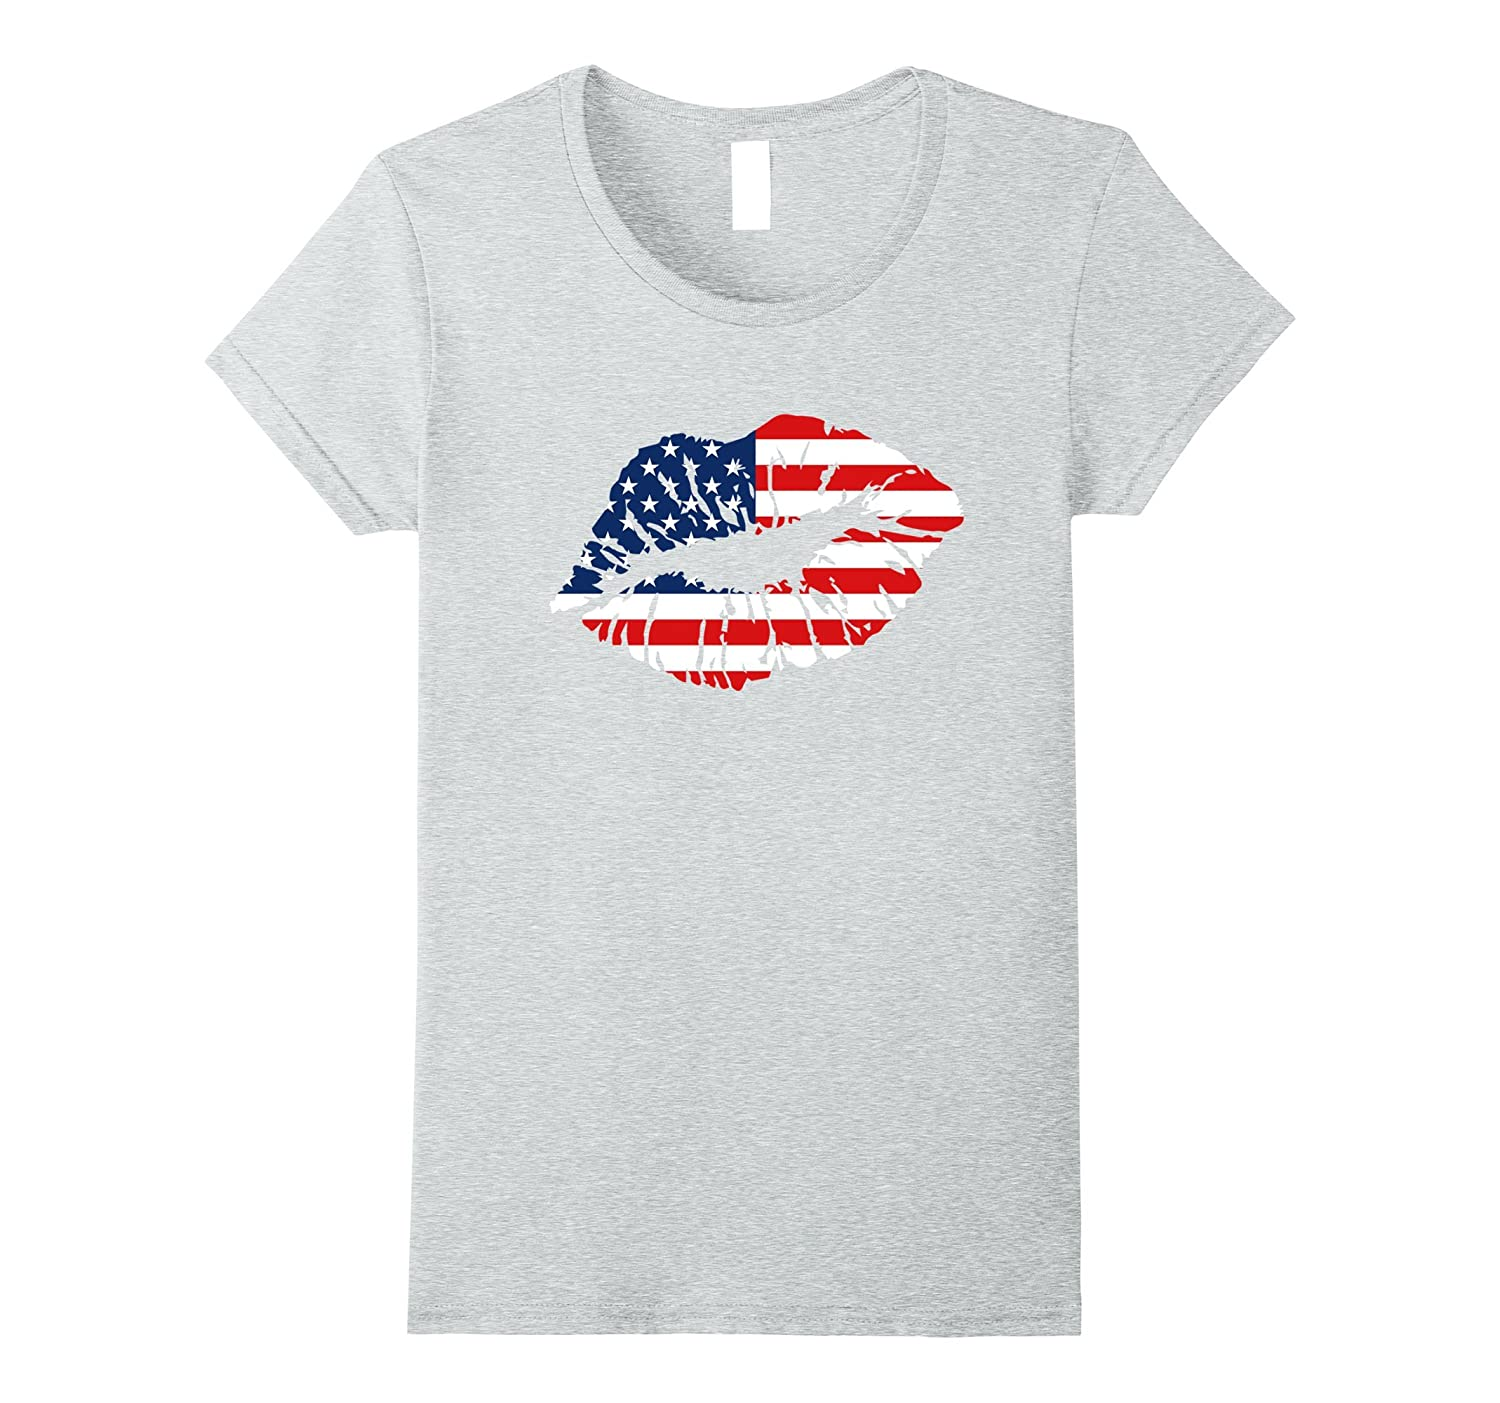 Fourth of July Lips T-Shirt Independence Day Shirt